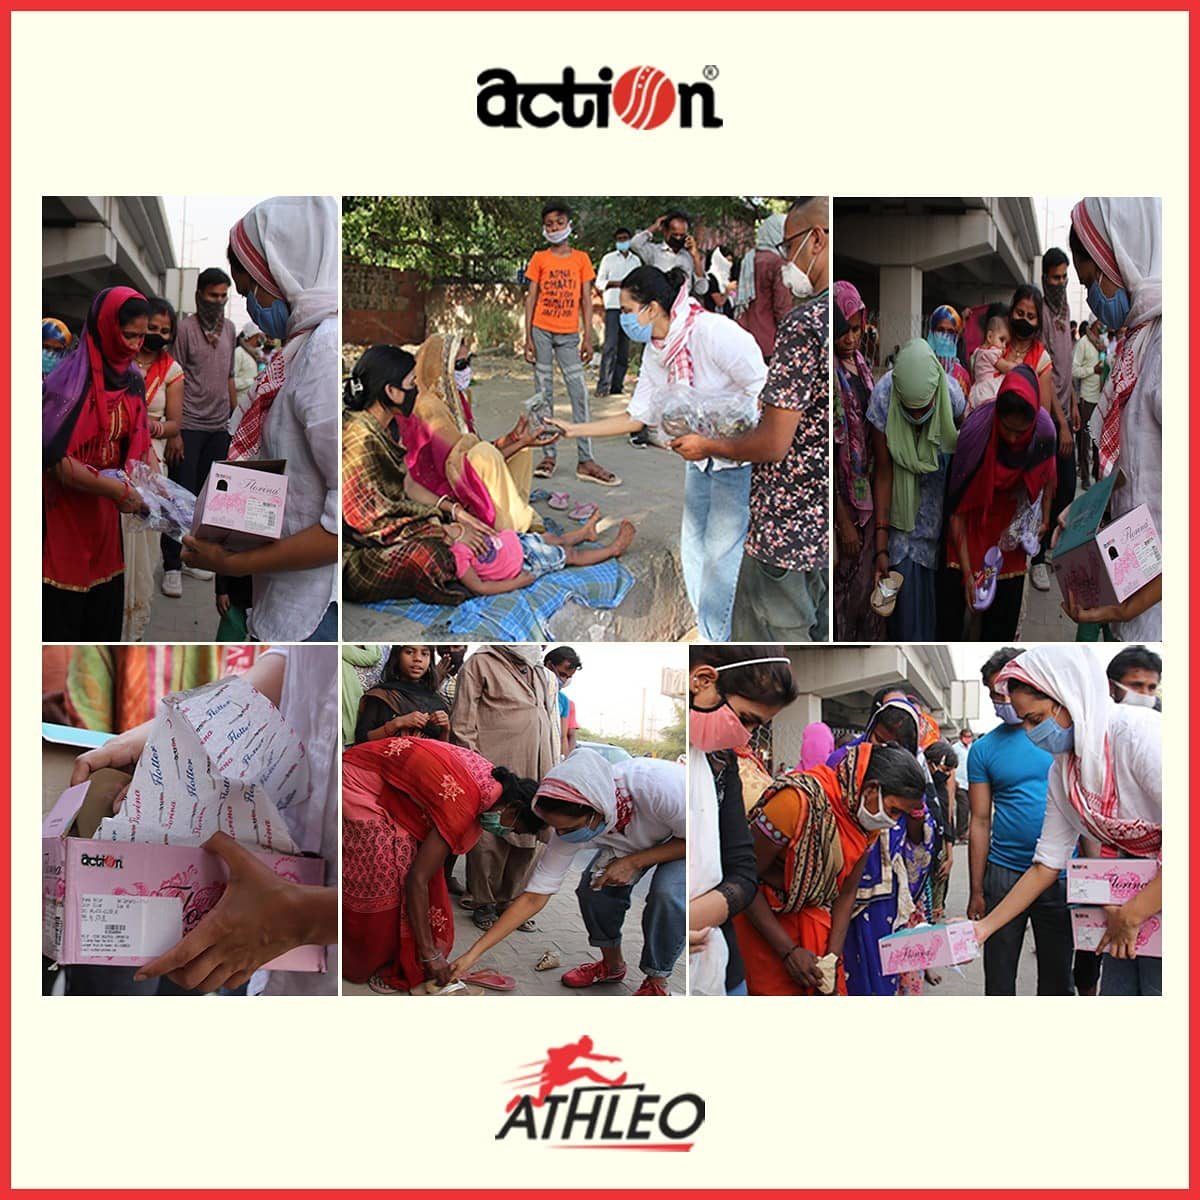 We collaborated with actor Swara Bhasker @ReallySwara , distributed 500 pairs of shoes in Delhi along with the on-ground volunteers of Karwan-E-Mohabbat, towards migrant relief.  @karwanemohabbat We feel privileged and happy to contribute towards the alleviation of their pain. https://t.co/LgxbNXxGmN